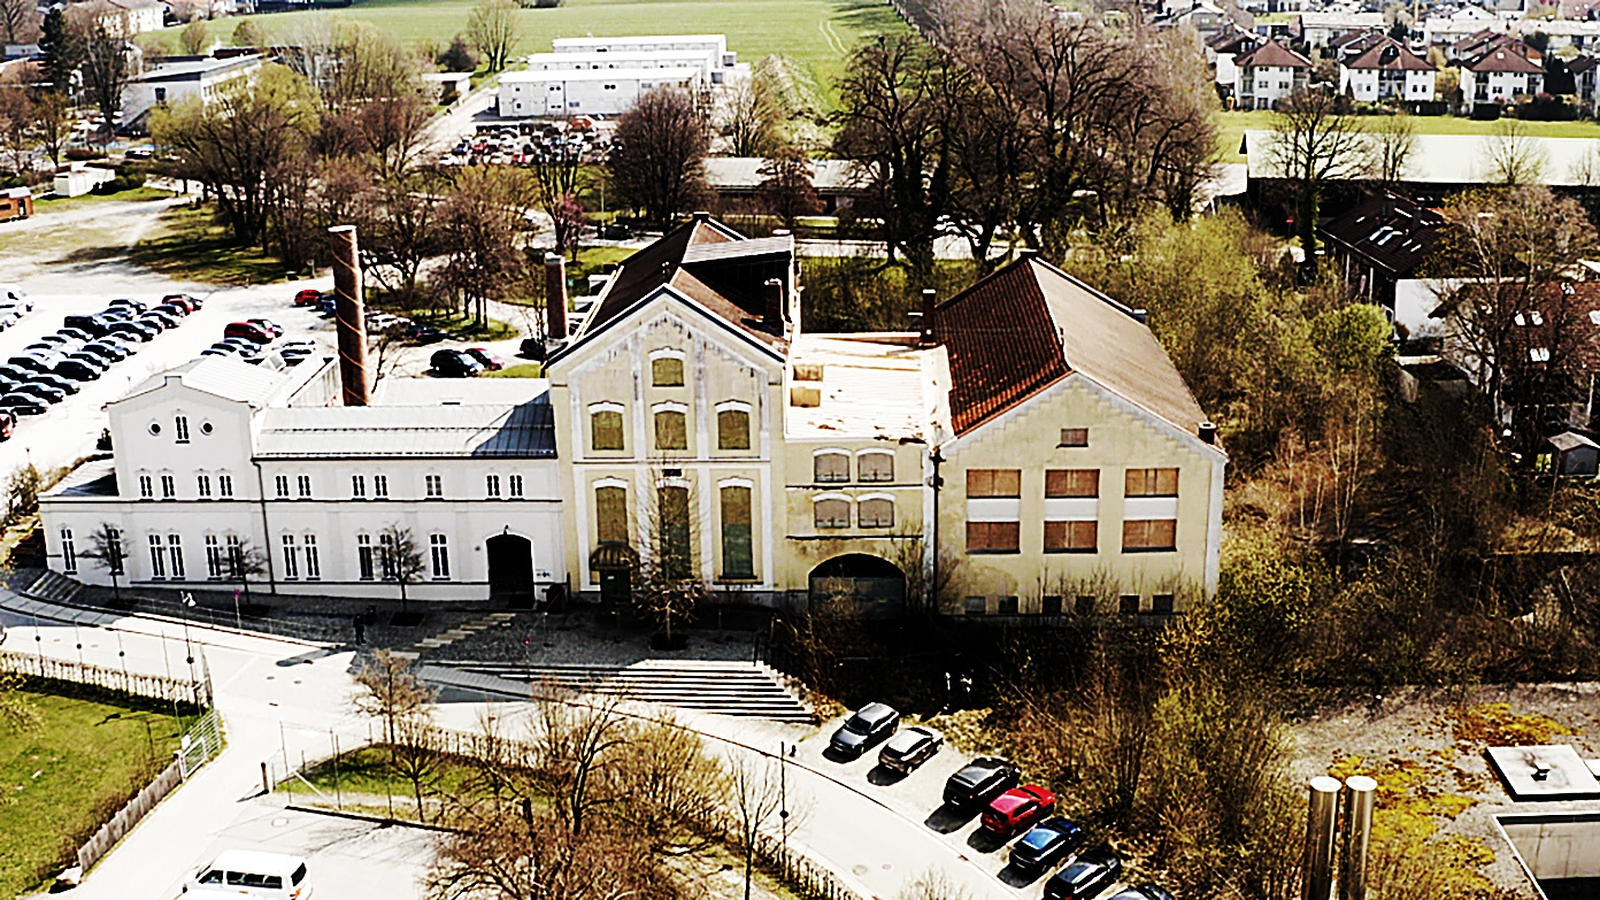 Image - A former brewery in Bad Aibling, near Munich in Germany, was bought by Dolphin more than five years ago. It has never been developed